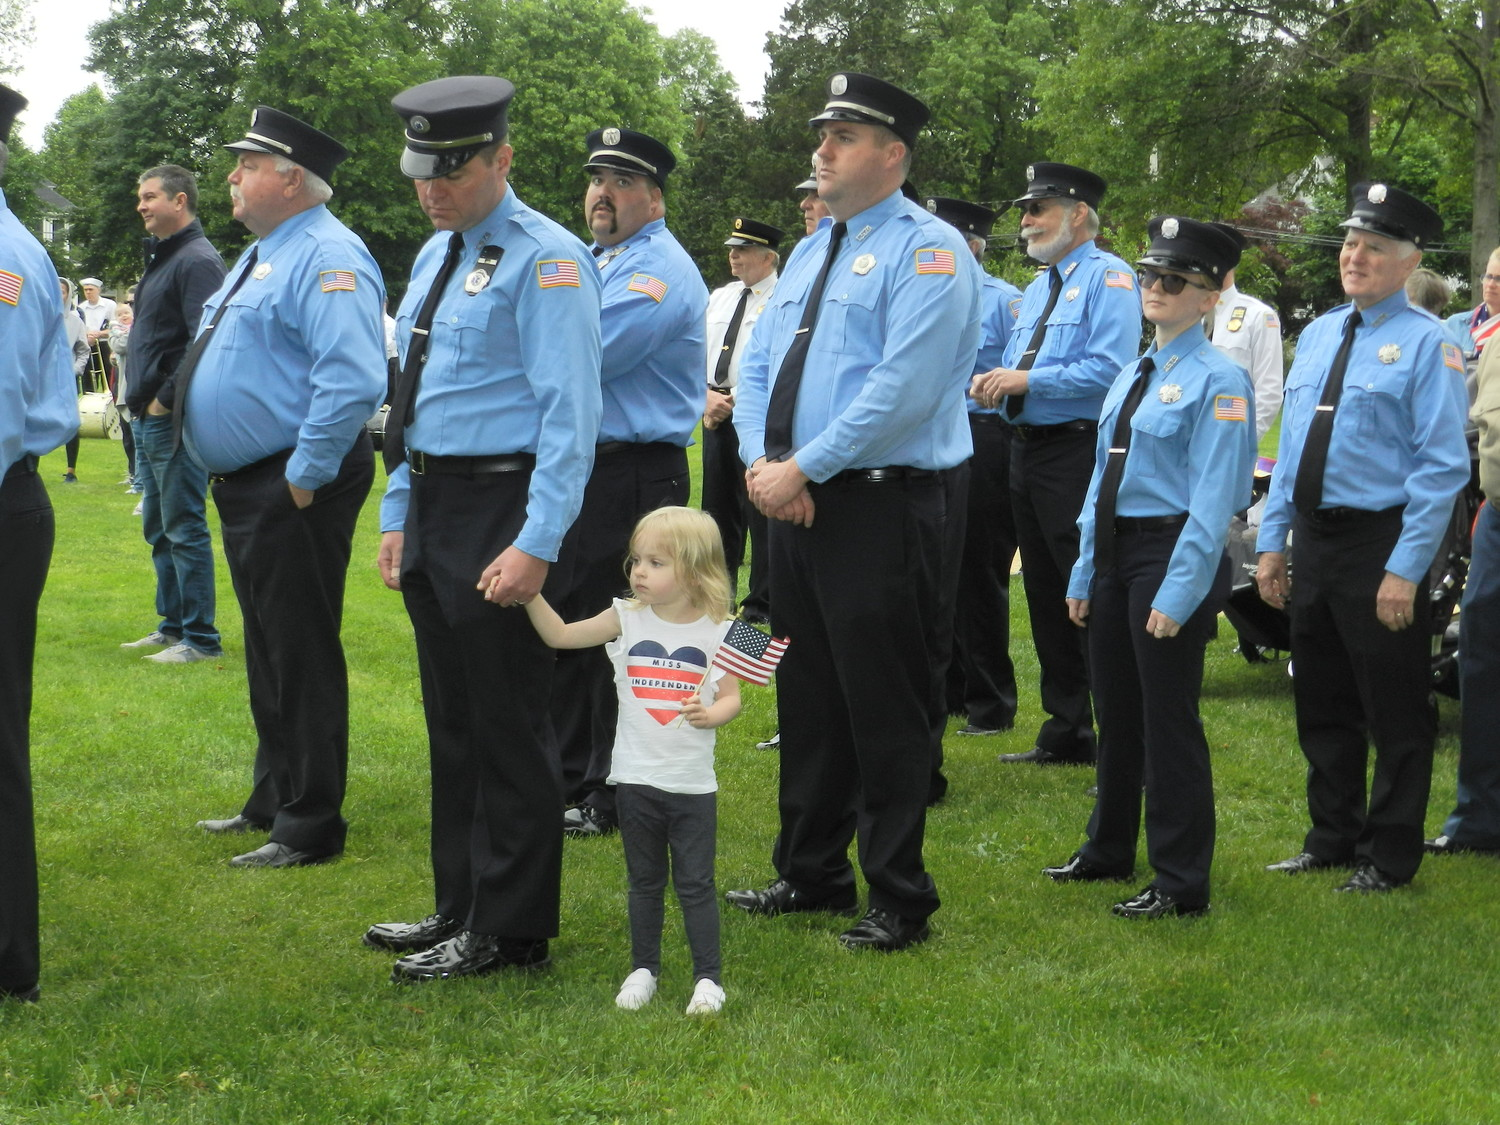 Evelyn Pierce, 3, held tight to her father's hand during the invocation ceremony at the Sea Cliff Memorial Day parade. Christopher Pierce and his father Jack, to his right, are both members of the Sea Cliff Fire Department.